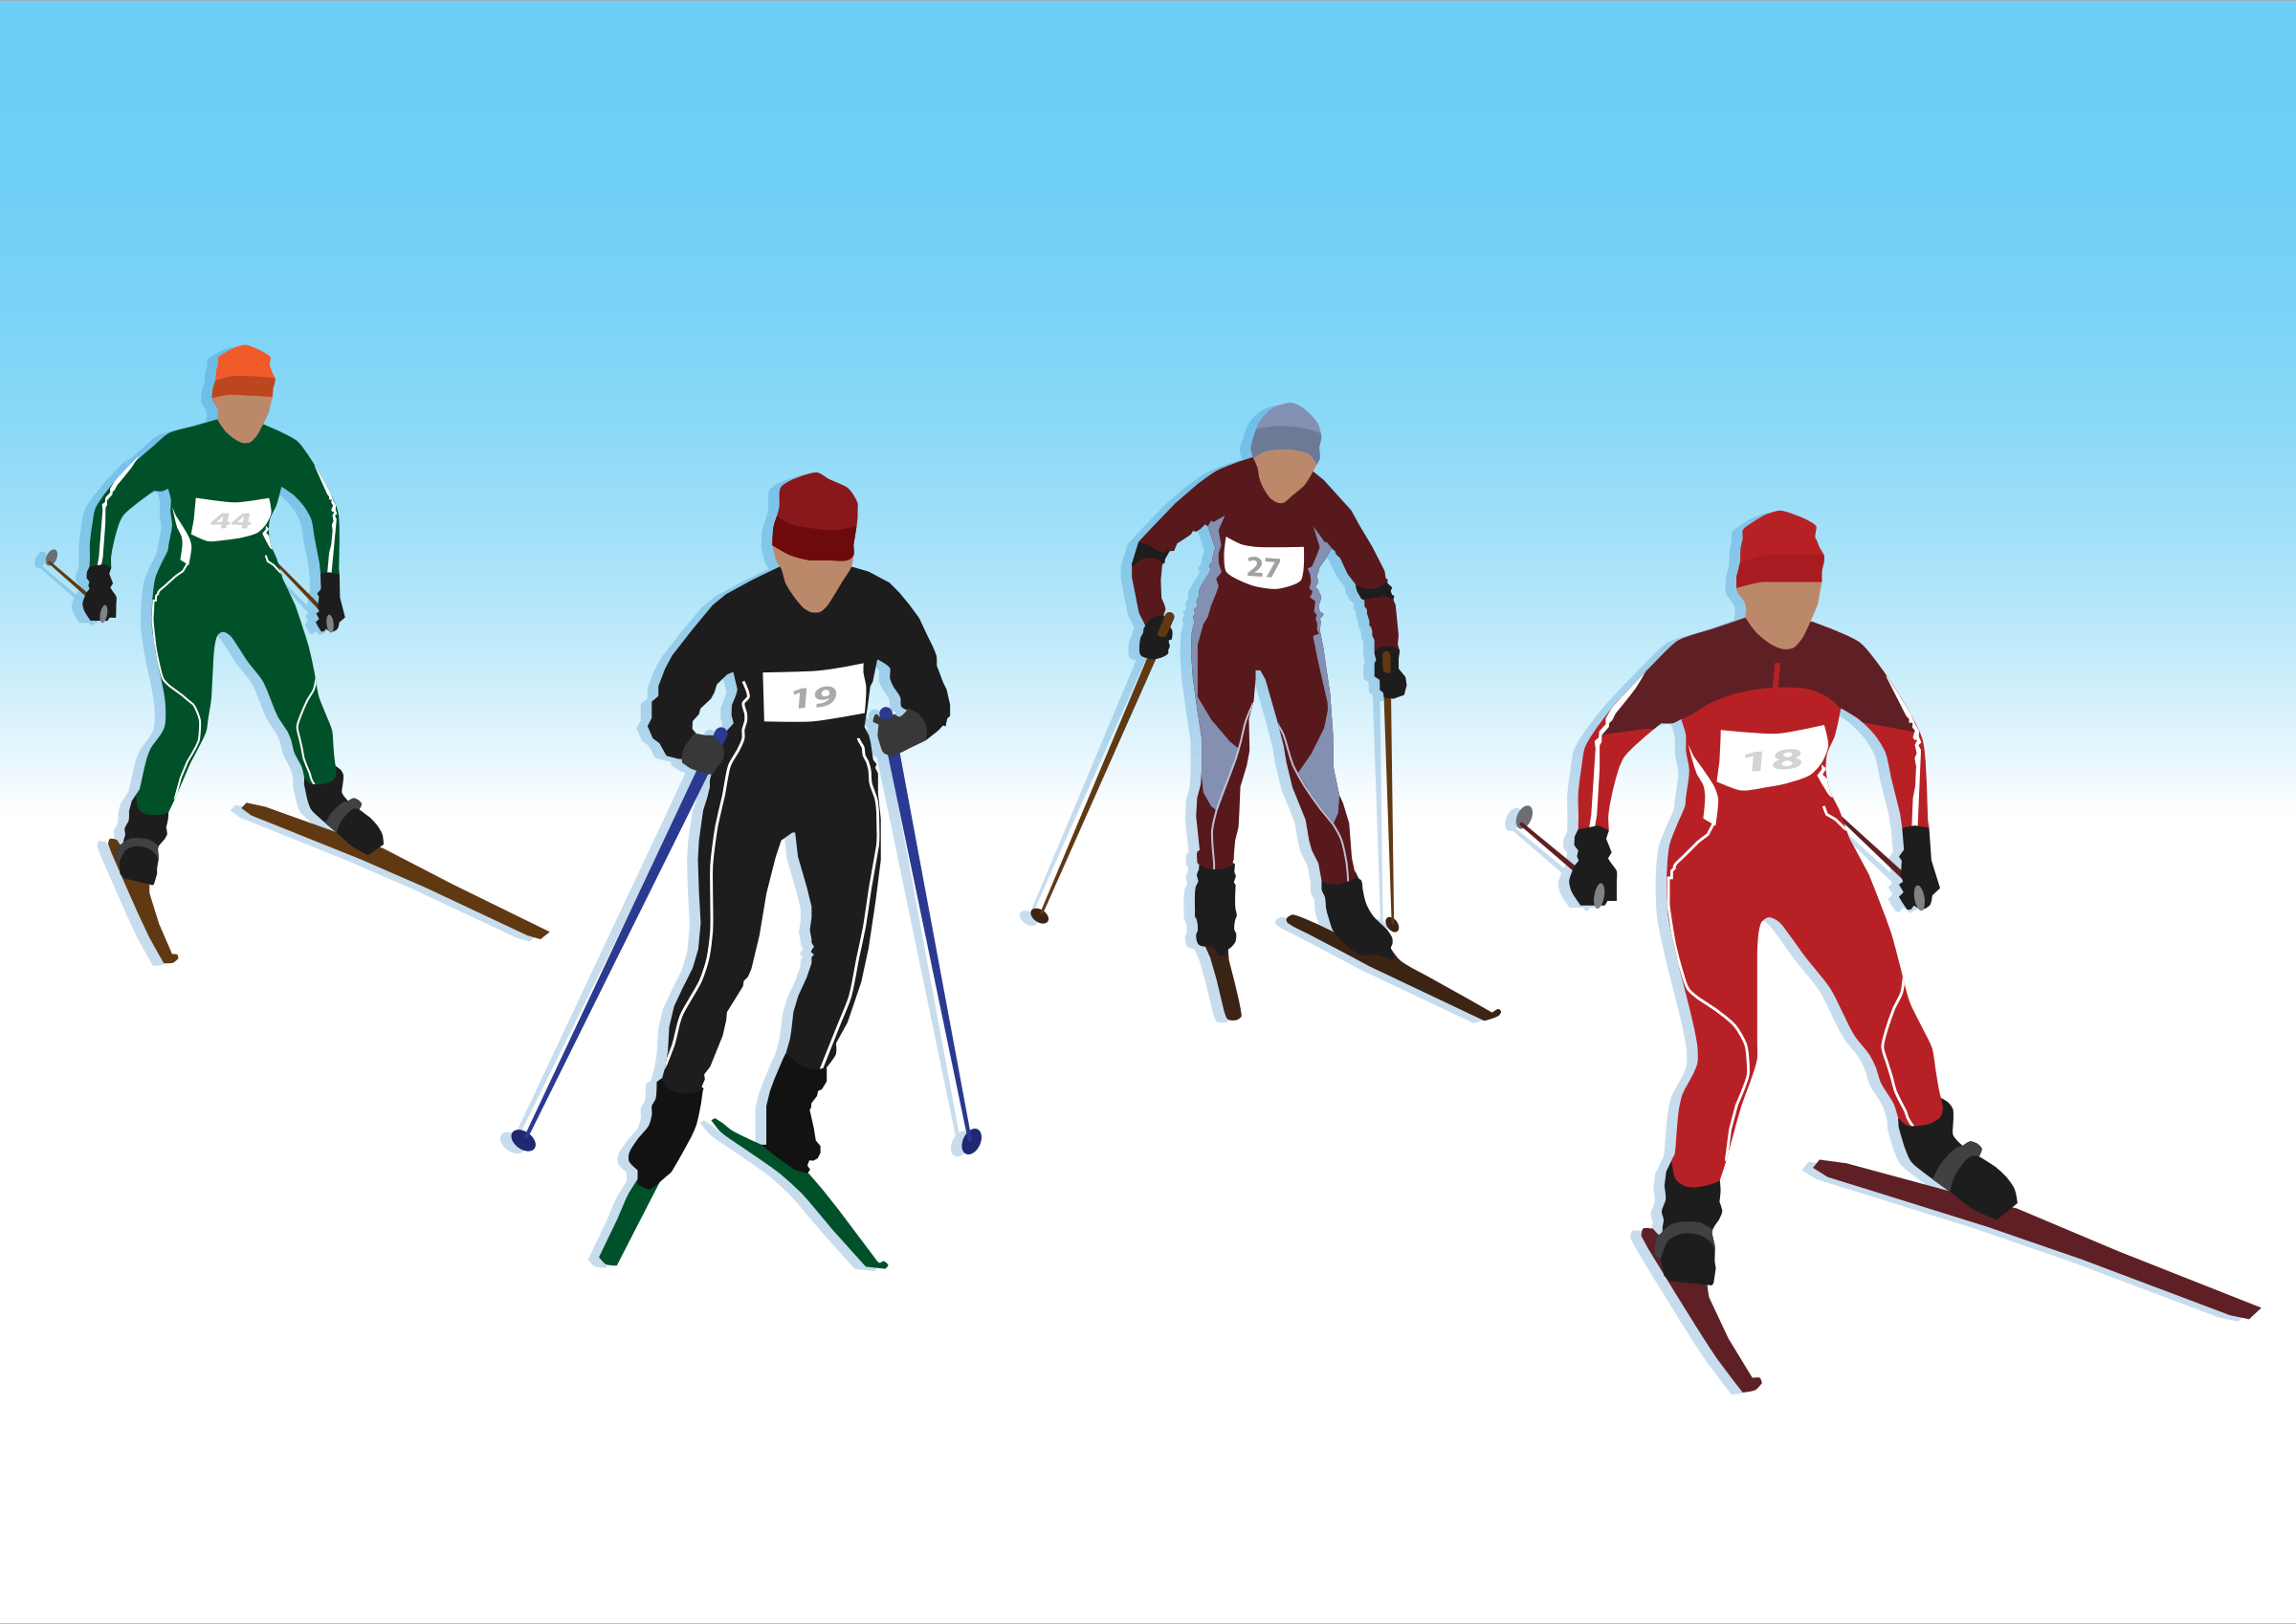 Skis clipart cross country skis. Skiing crosscountry